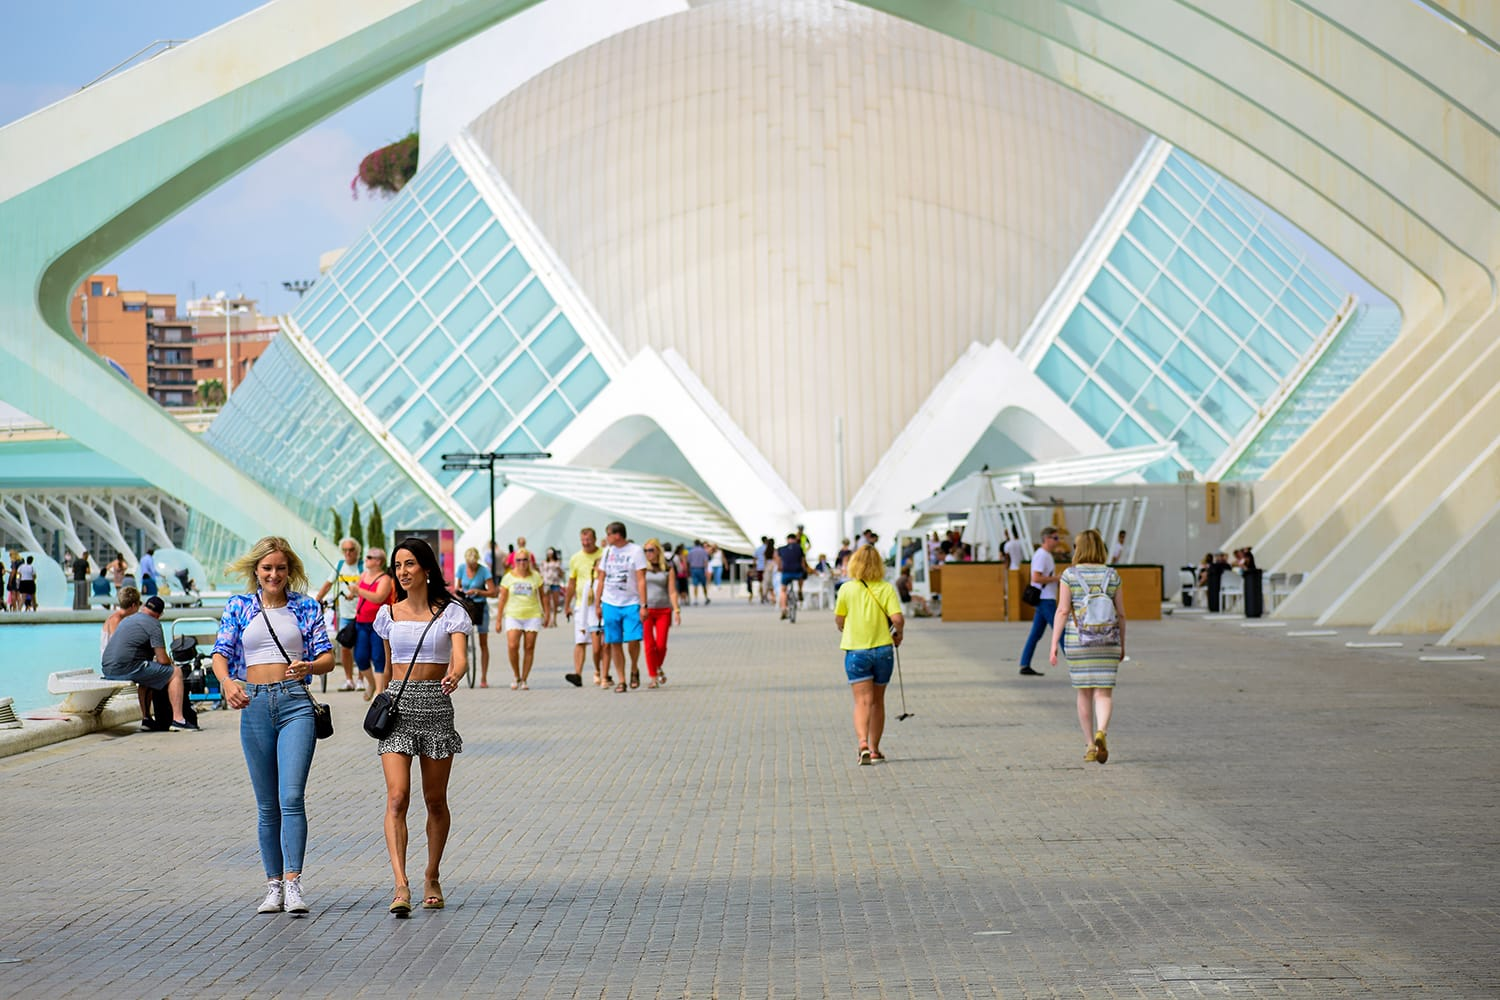 People visit the City of Arts and Sciences, Oceanographic and hemisphere museum, famous place from Spain, Europe, Valencia